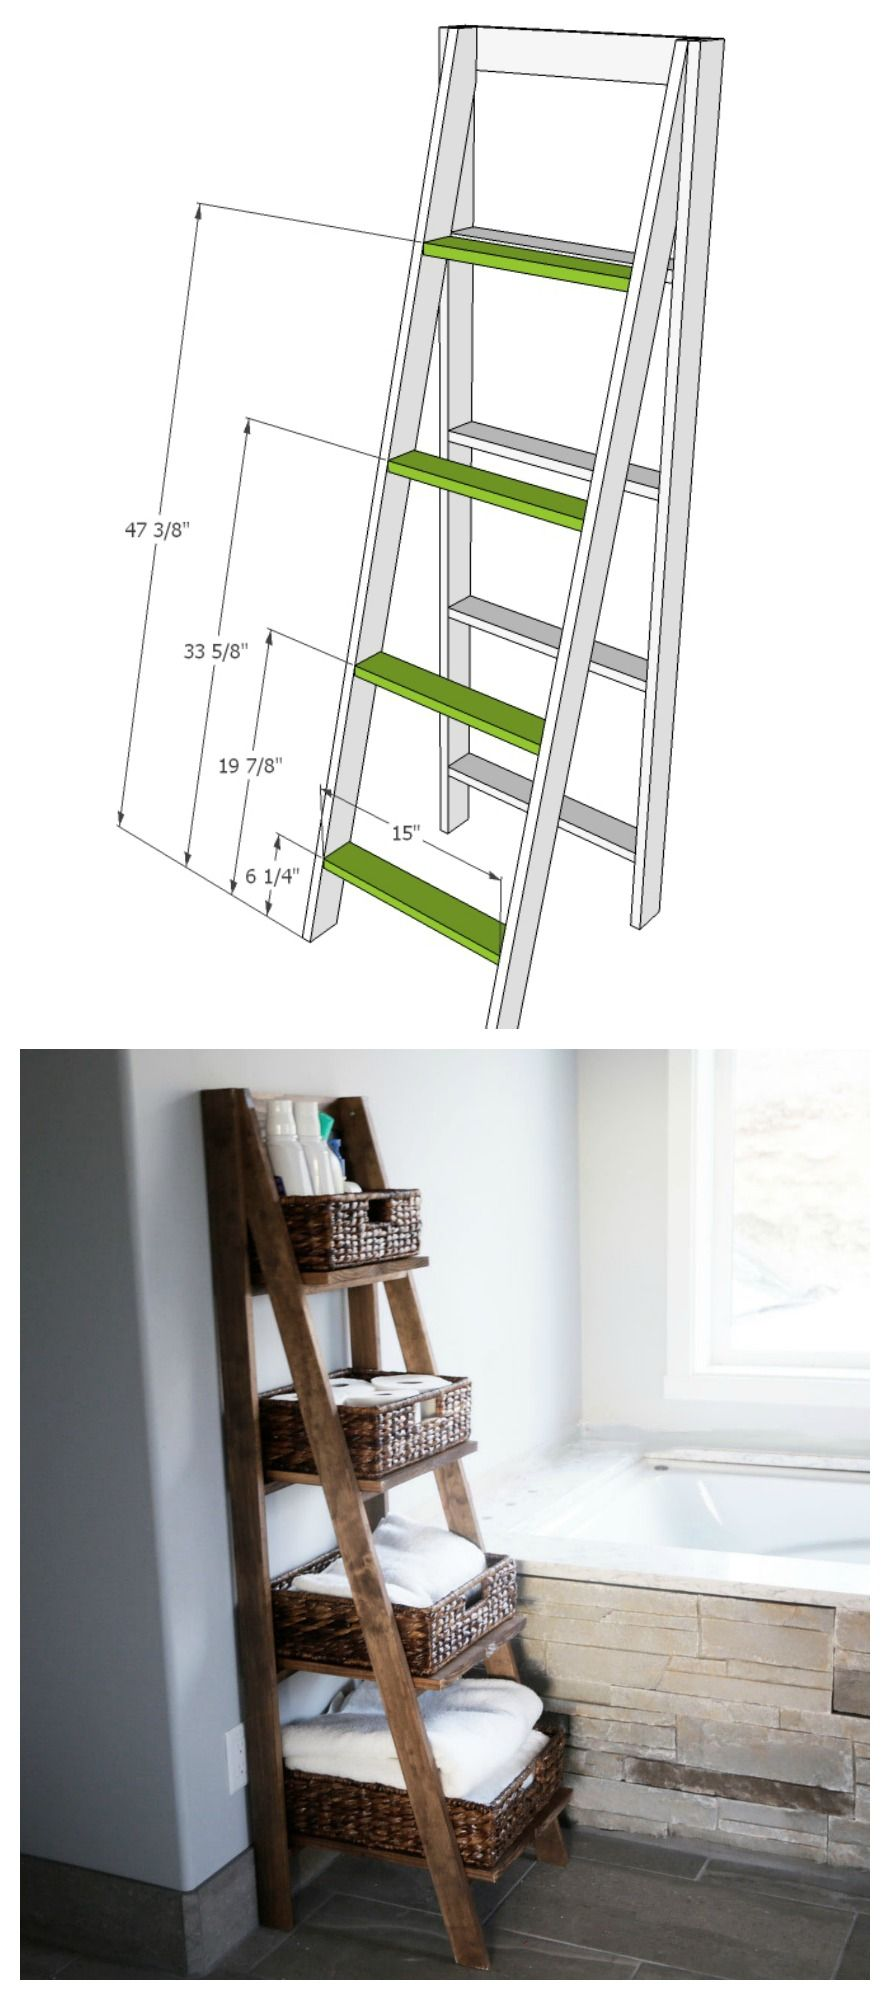 Wooden Ladder Shelf Wooden Ladder Shelf Ladder Shelf Diy Diy Shelves